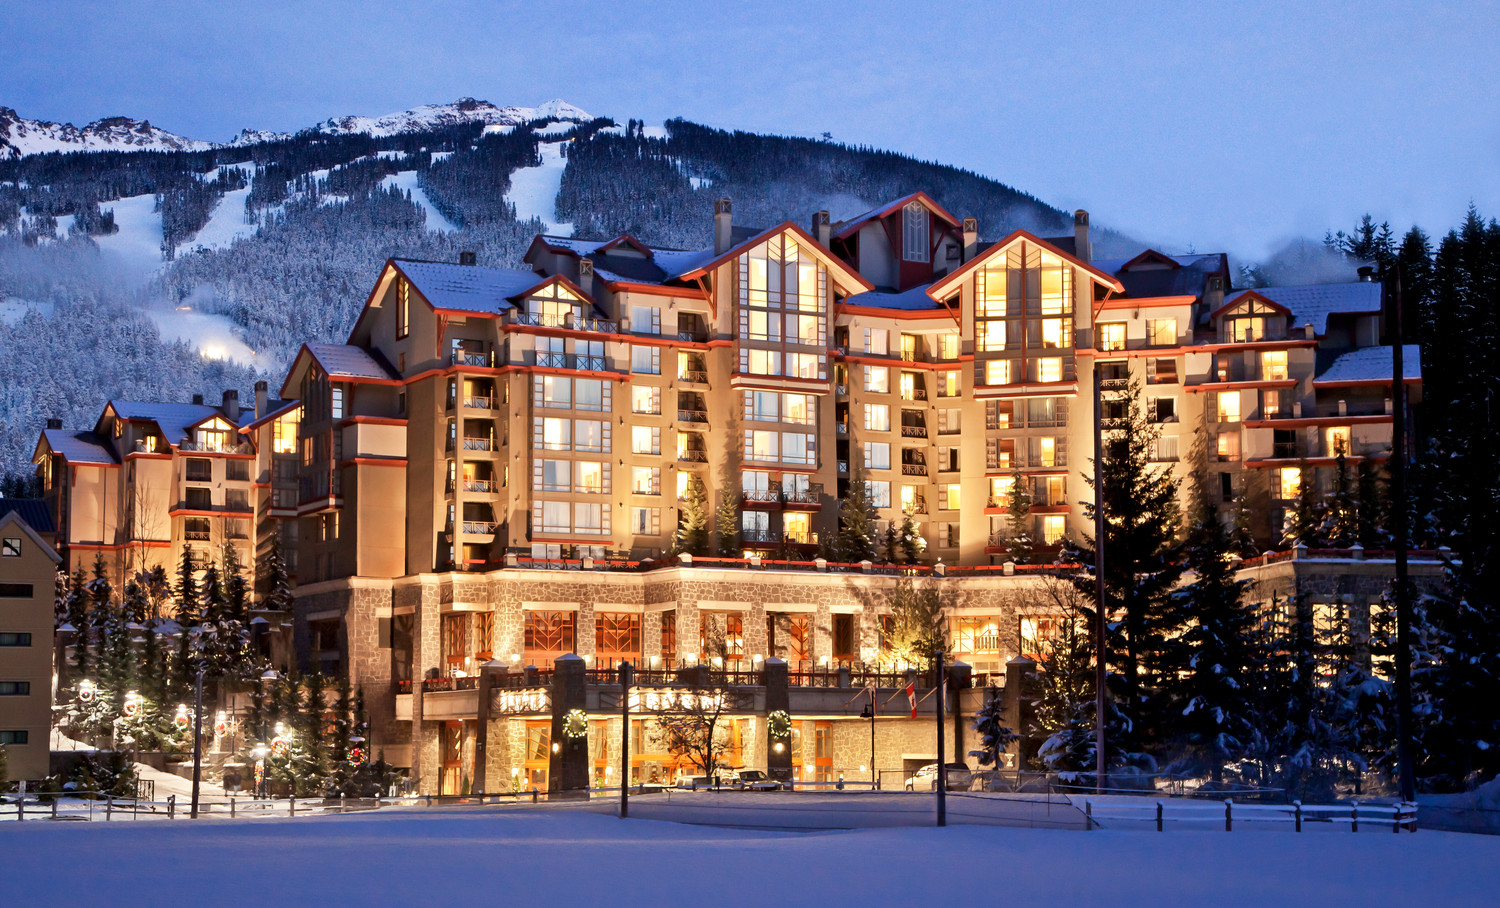 Westin Resort Whistler exterior in snow winter